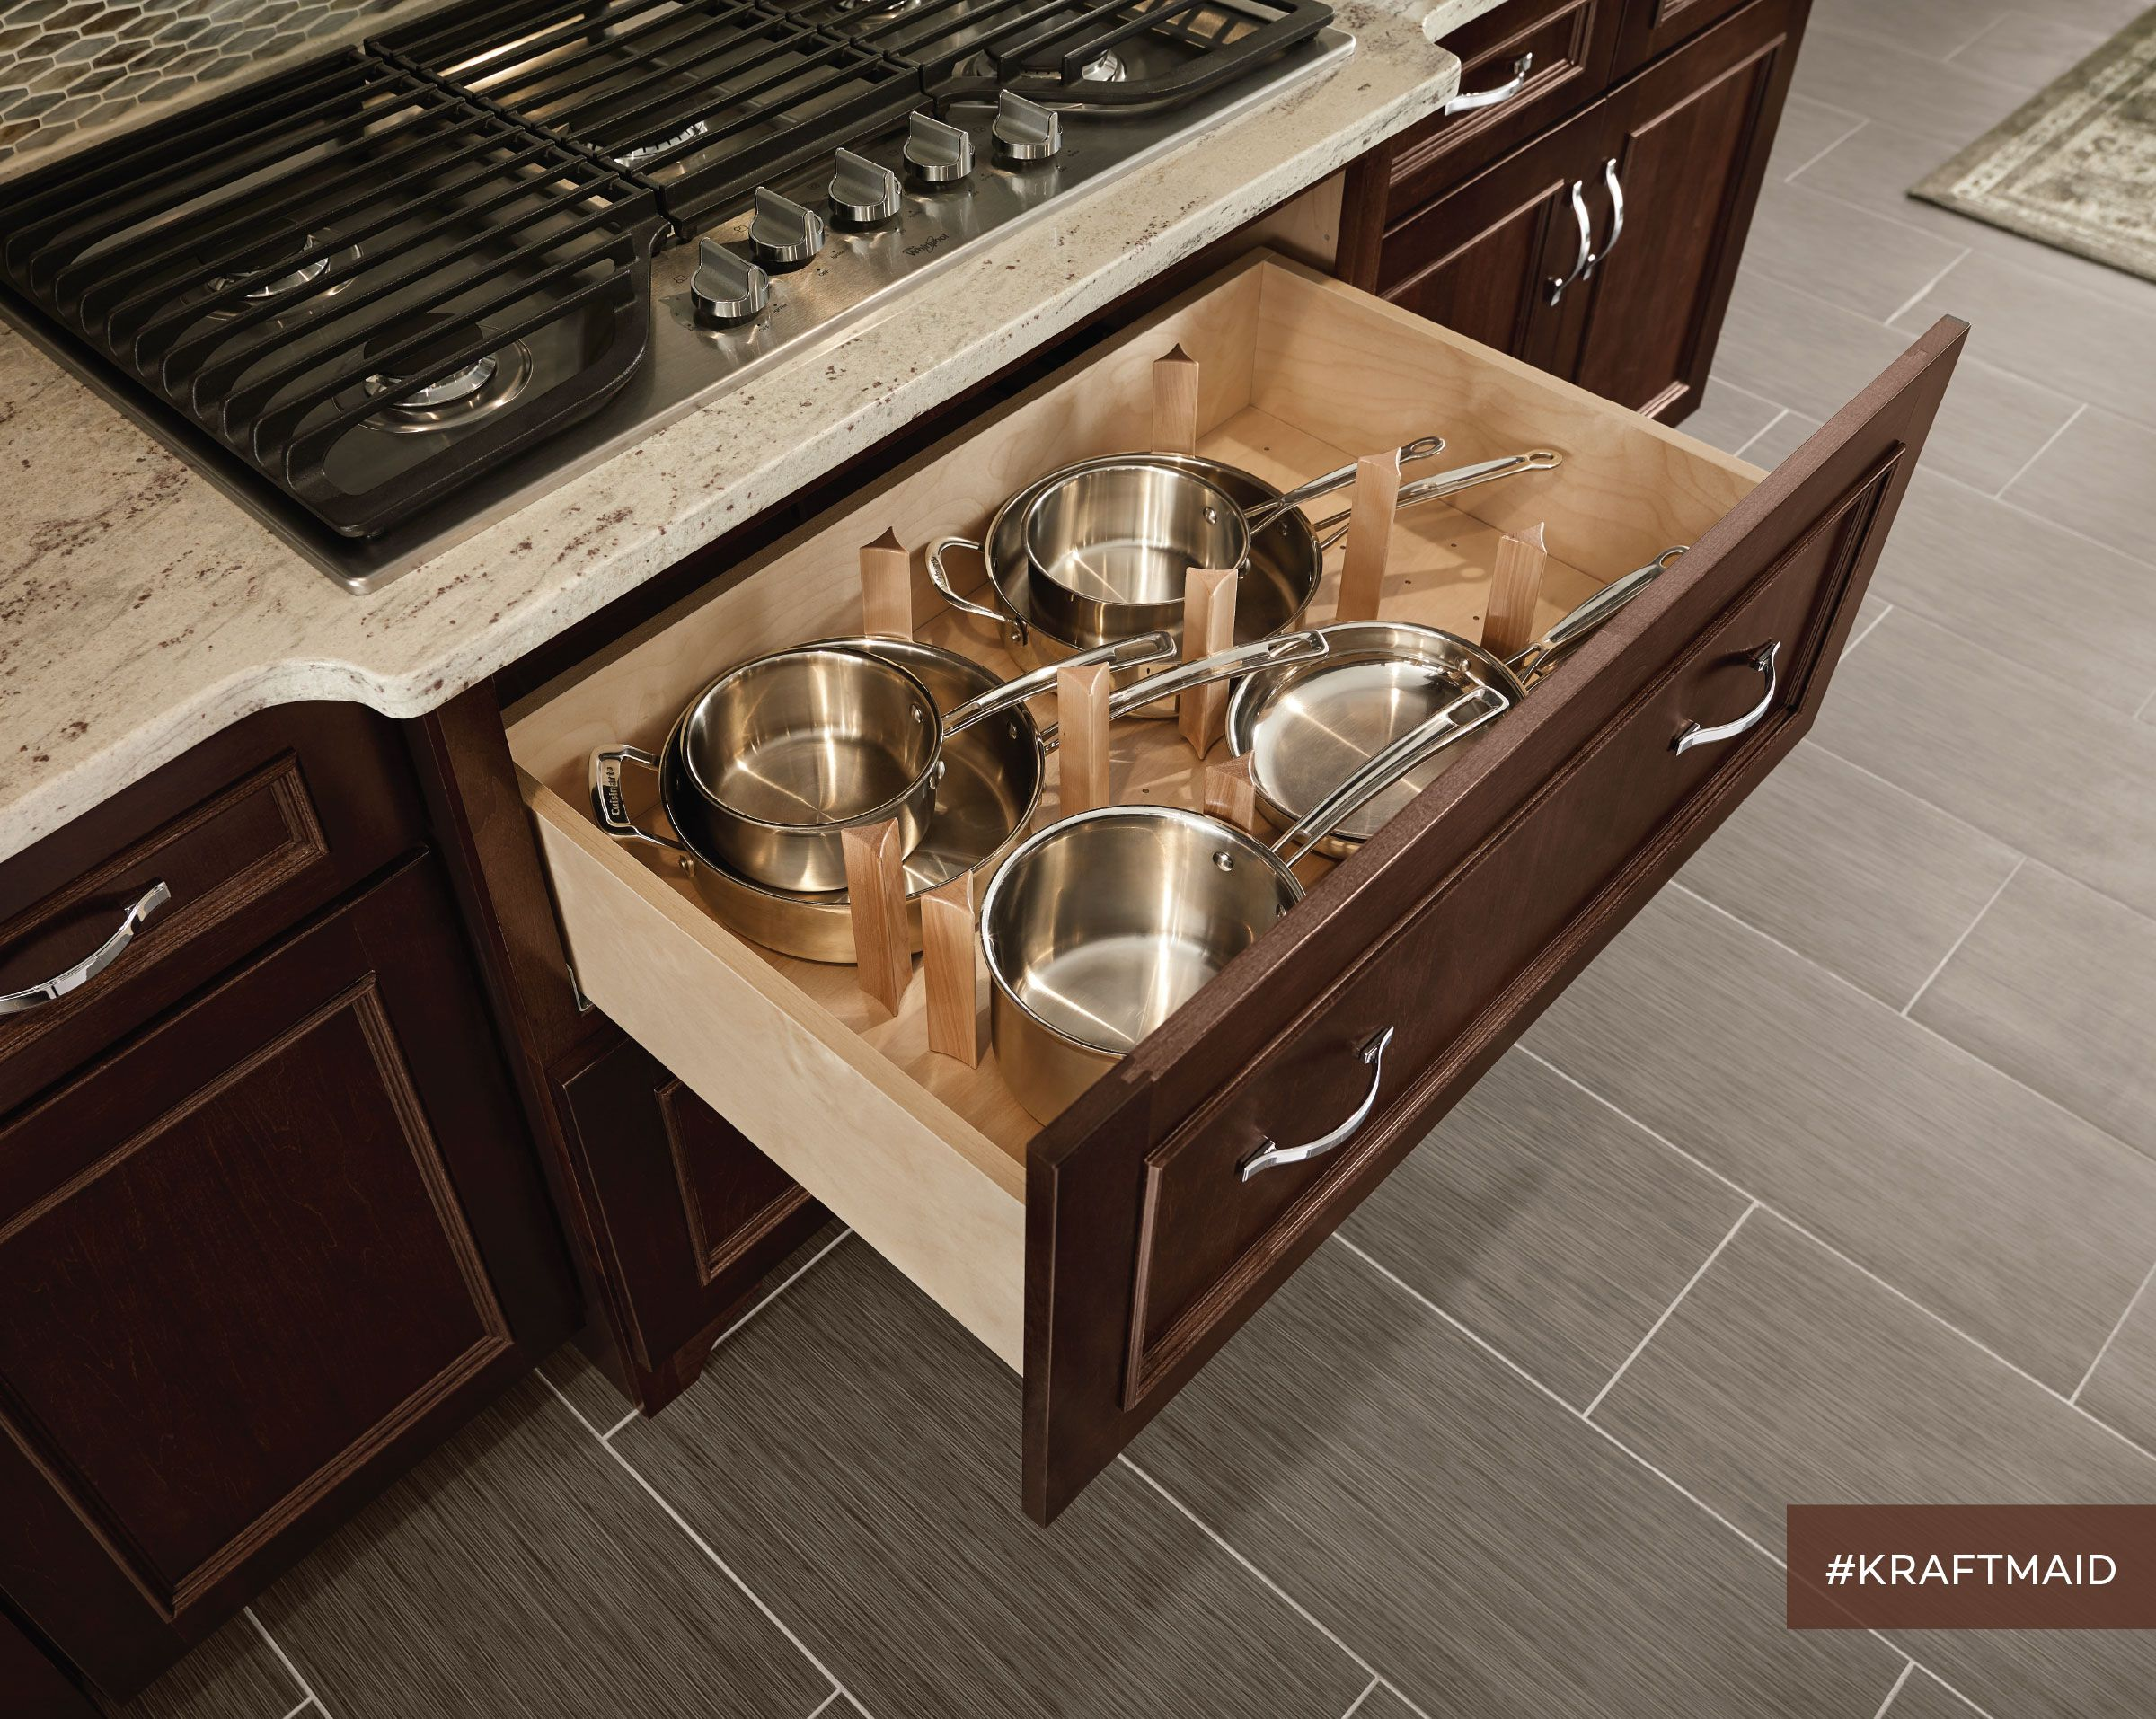 Kitchen Cabinet Drawer Organizers The Scoop Top Drawer Fits Under The Cooktop And Provides